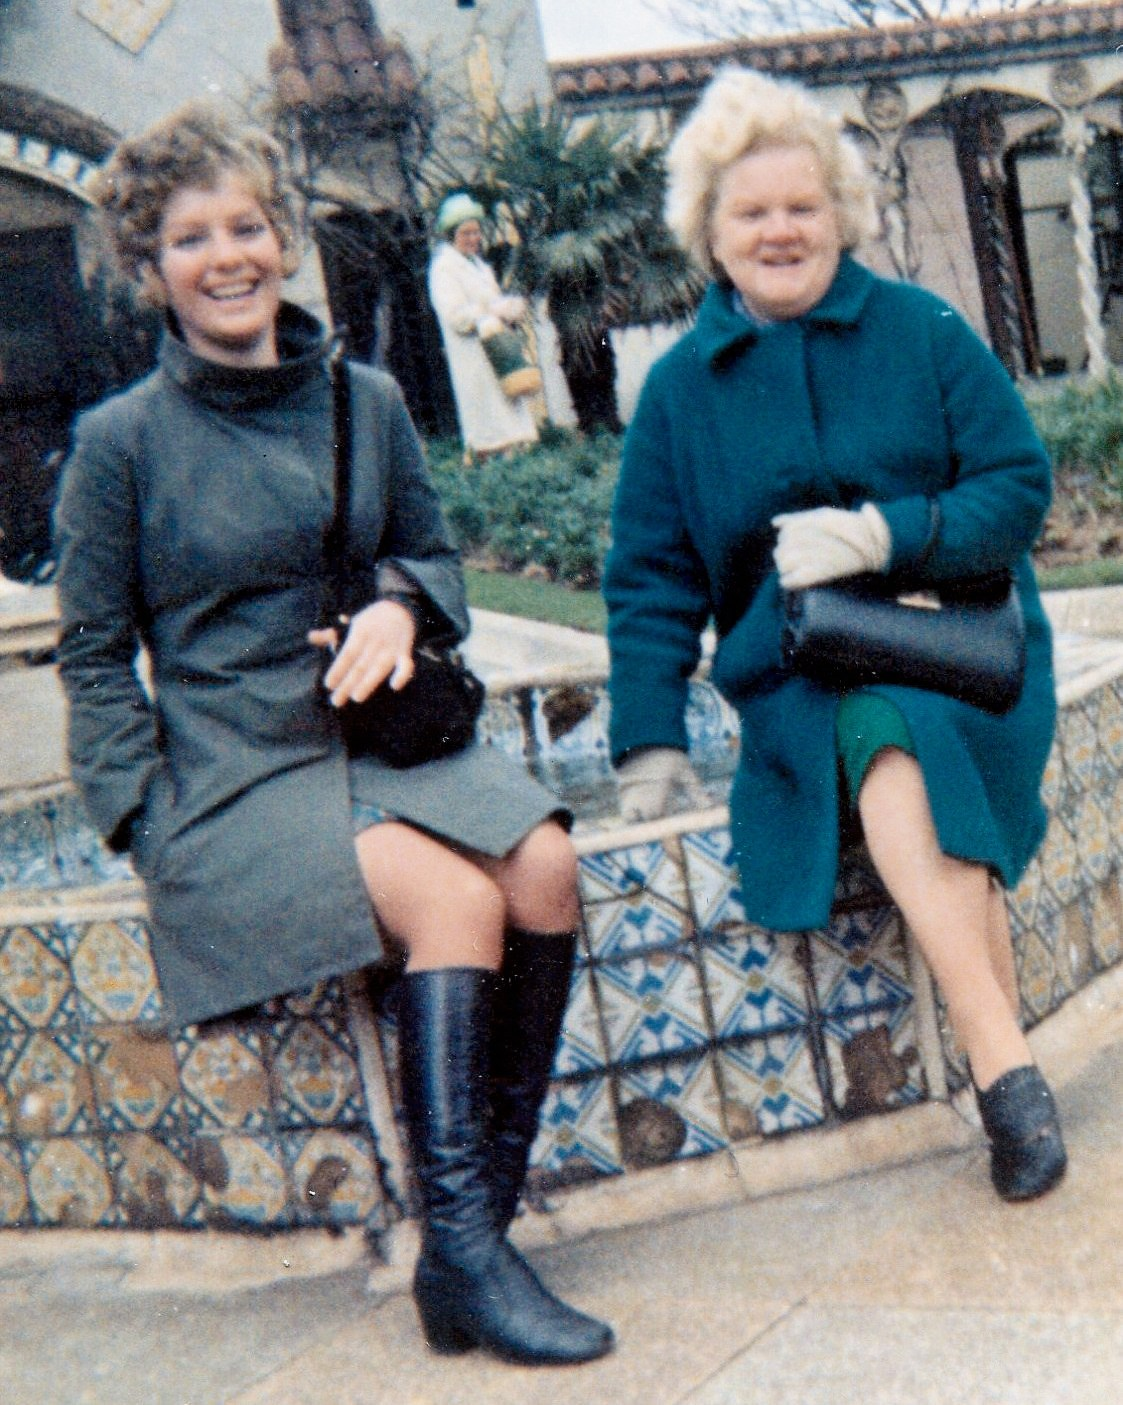 Mavis with her Mum April 1969? just after heart surgery - looks great!